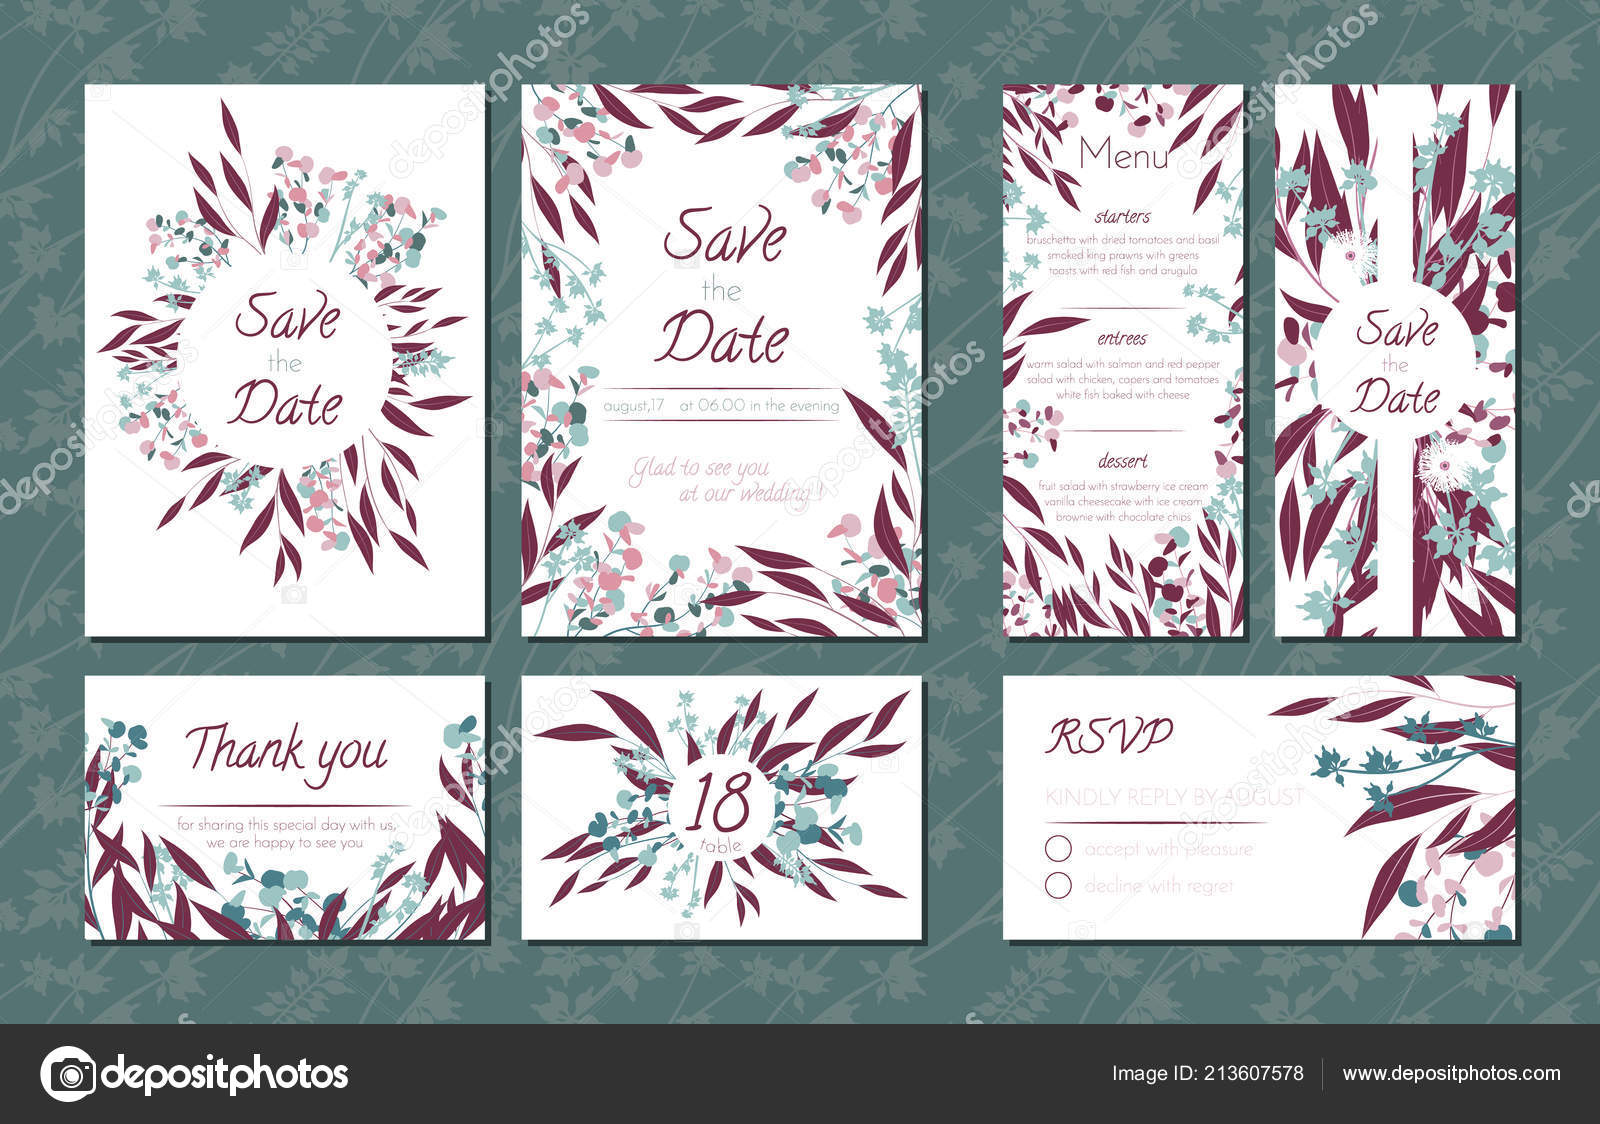 Floral Vintage Cards Set for Wedding. Invitation Templates, Rsvp, Menu Templates  with Eucalyptus Leaves in Watercolor Style. Rustic Greenery Design for  Brochure, Booklet. Floral Vintage Illustration. — Stock Vector © ingara  #213607578